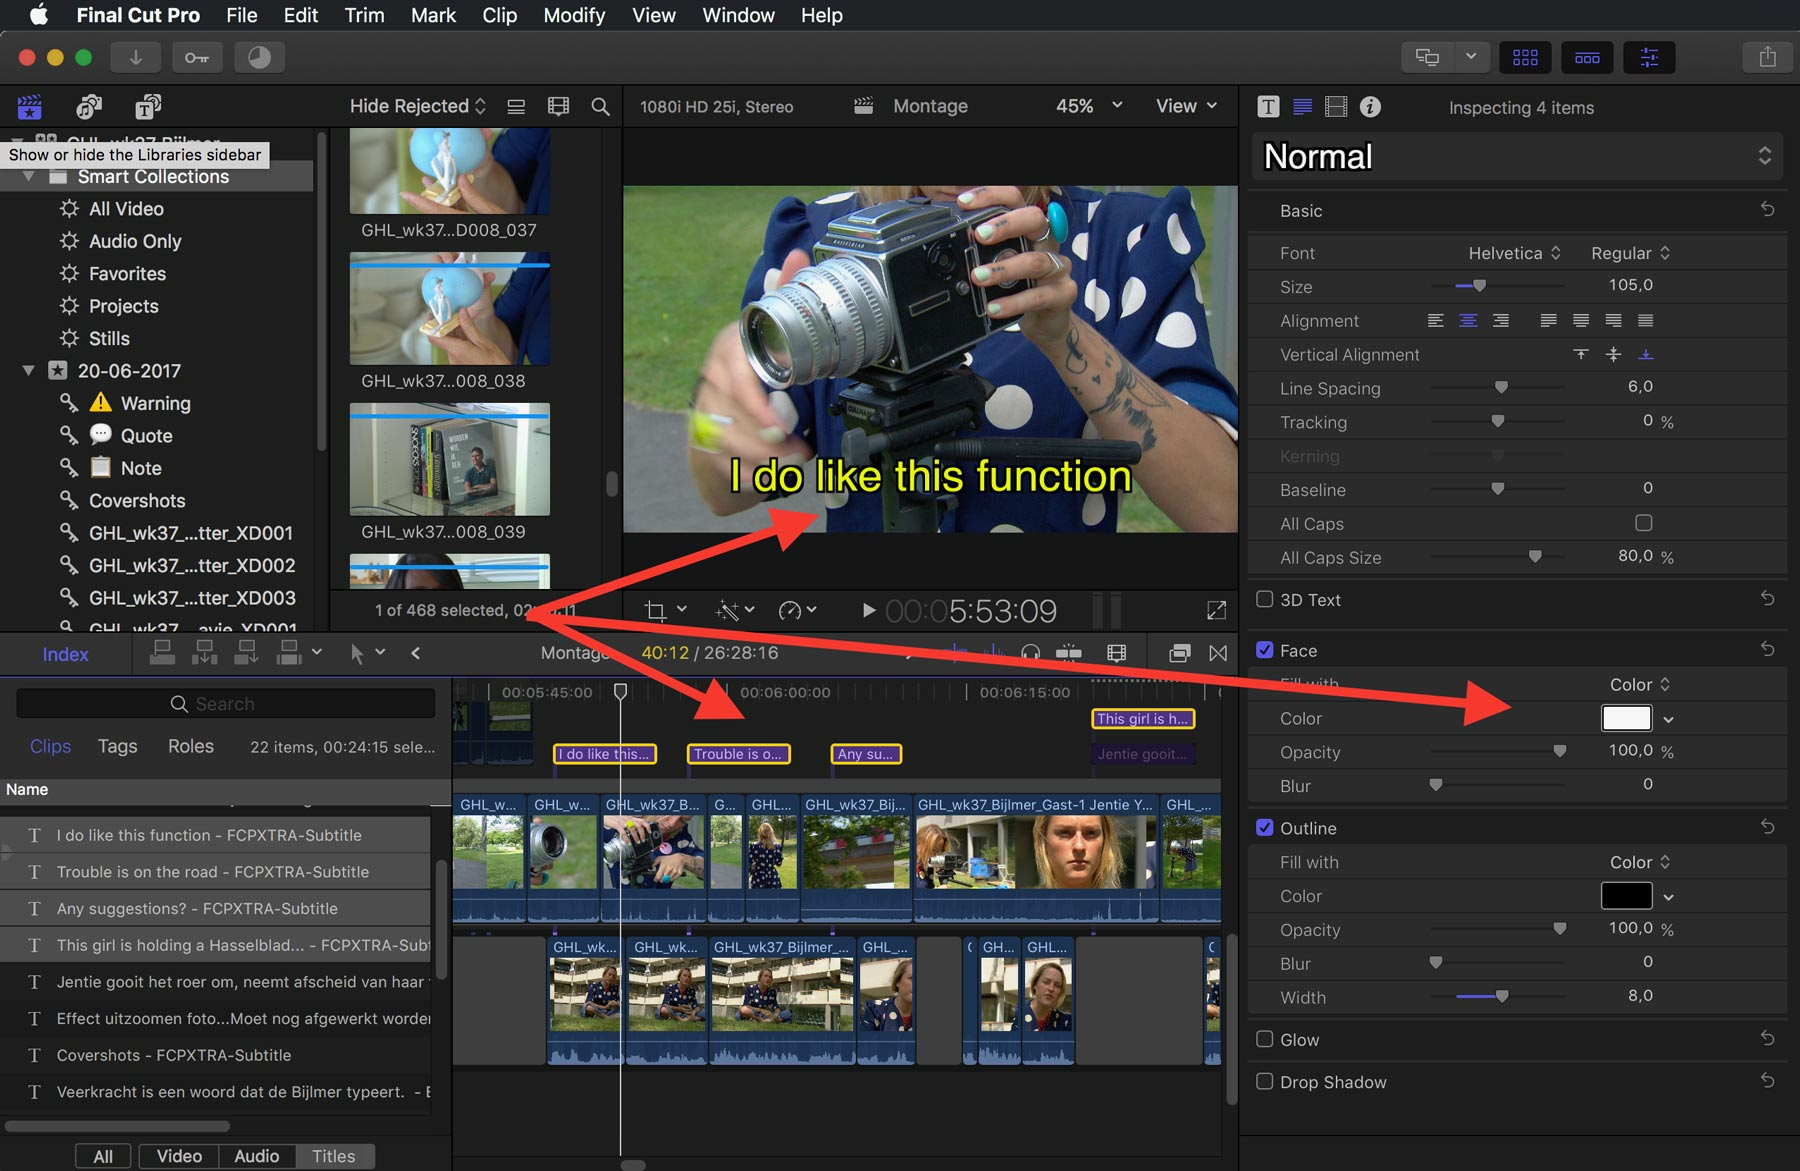 Drawing Lines In Final Cut Pro : Speeding up the creation of subtitles in final cut pro with